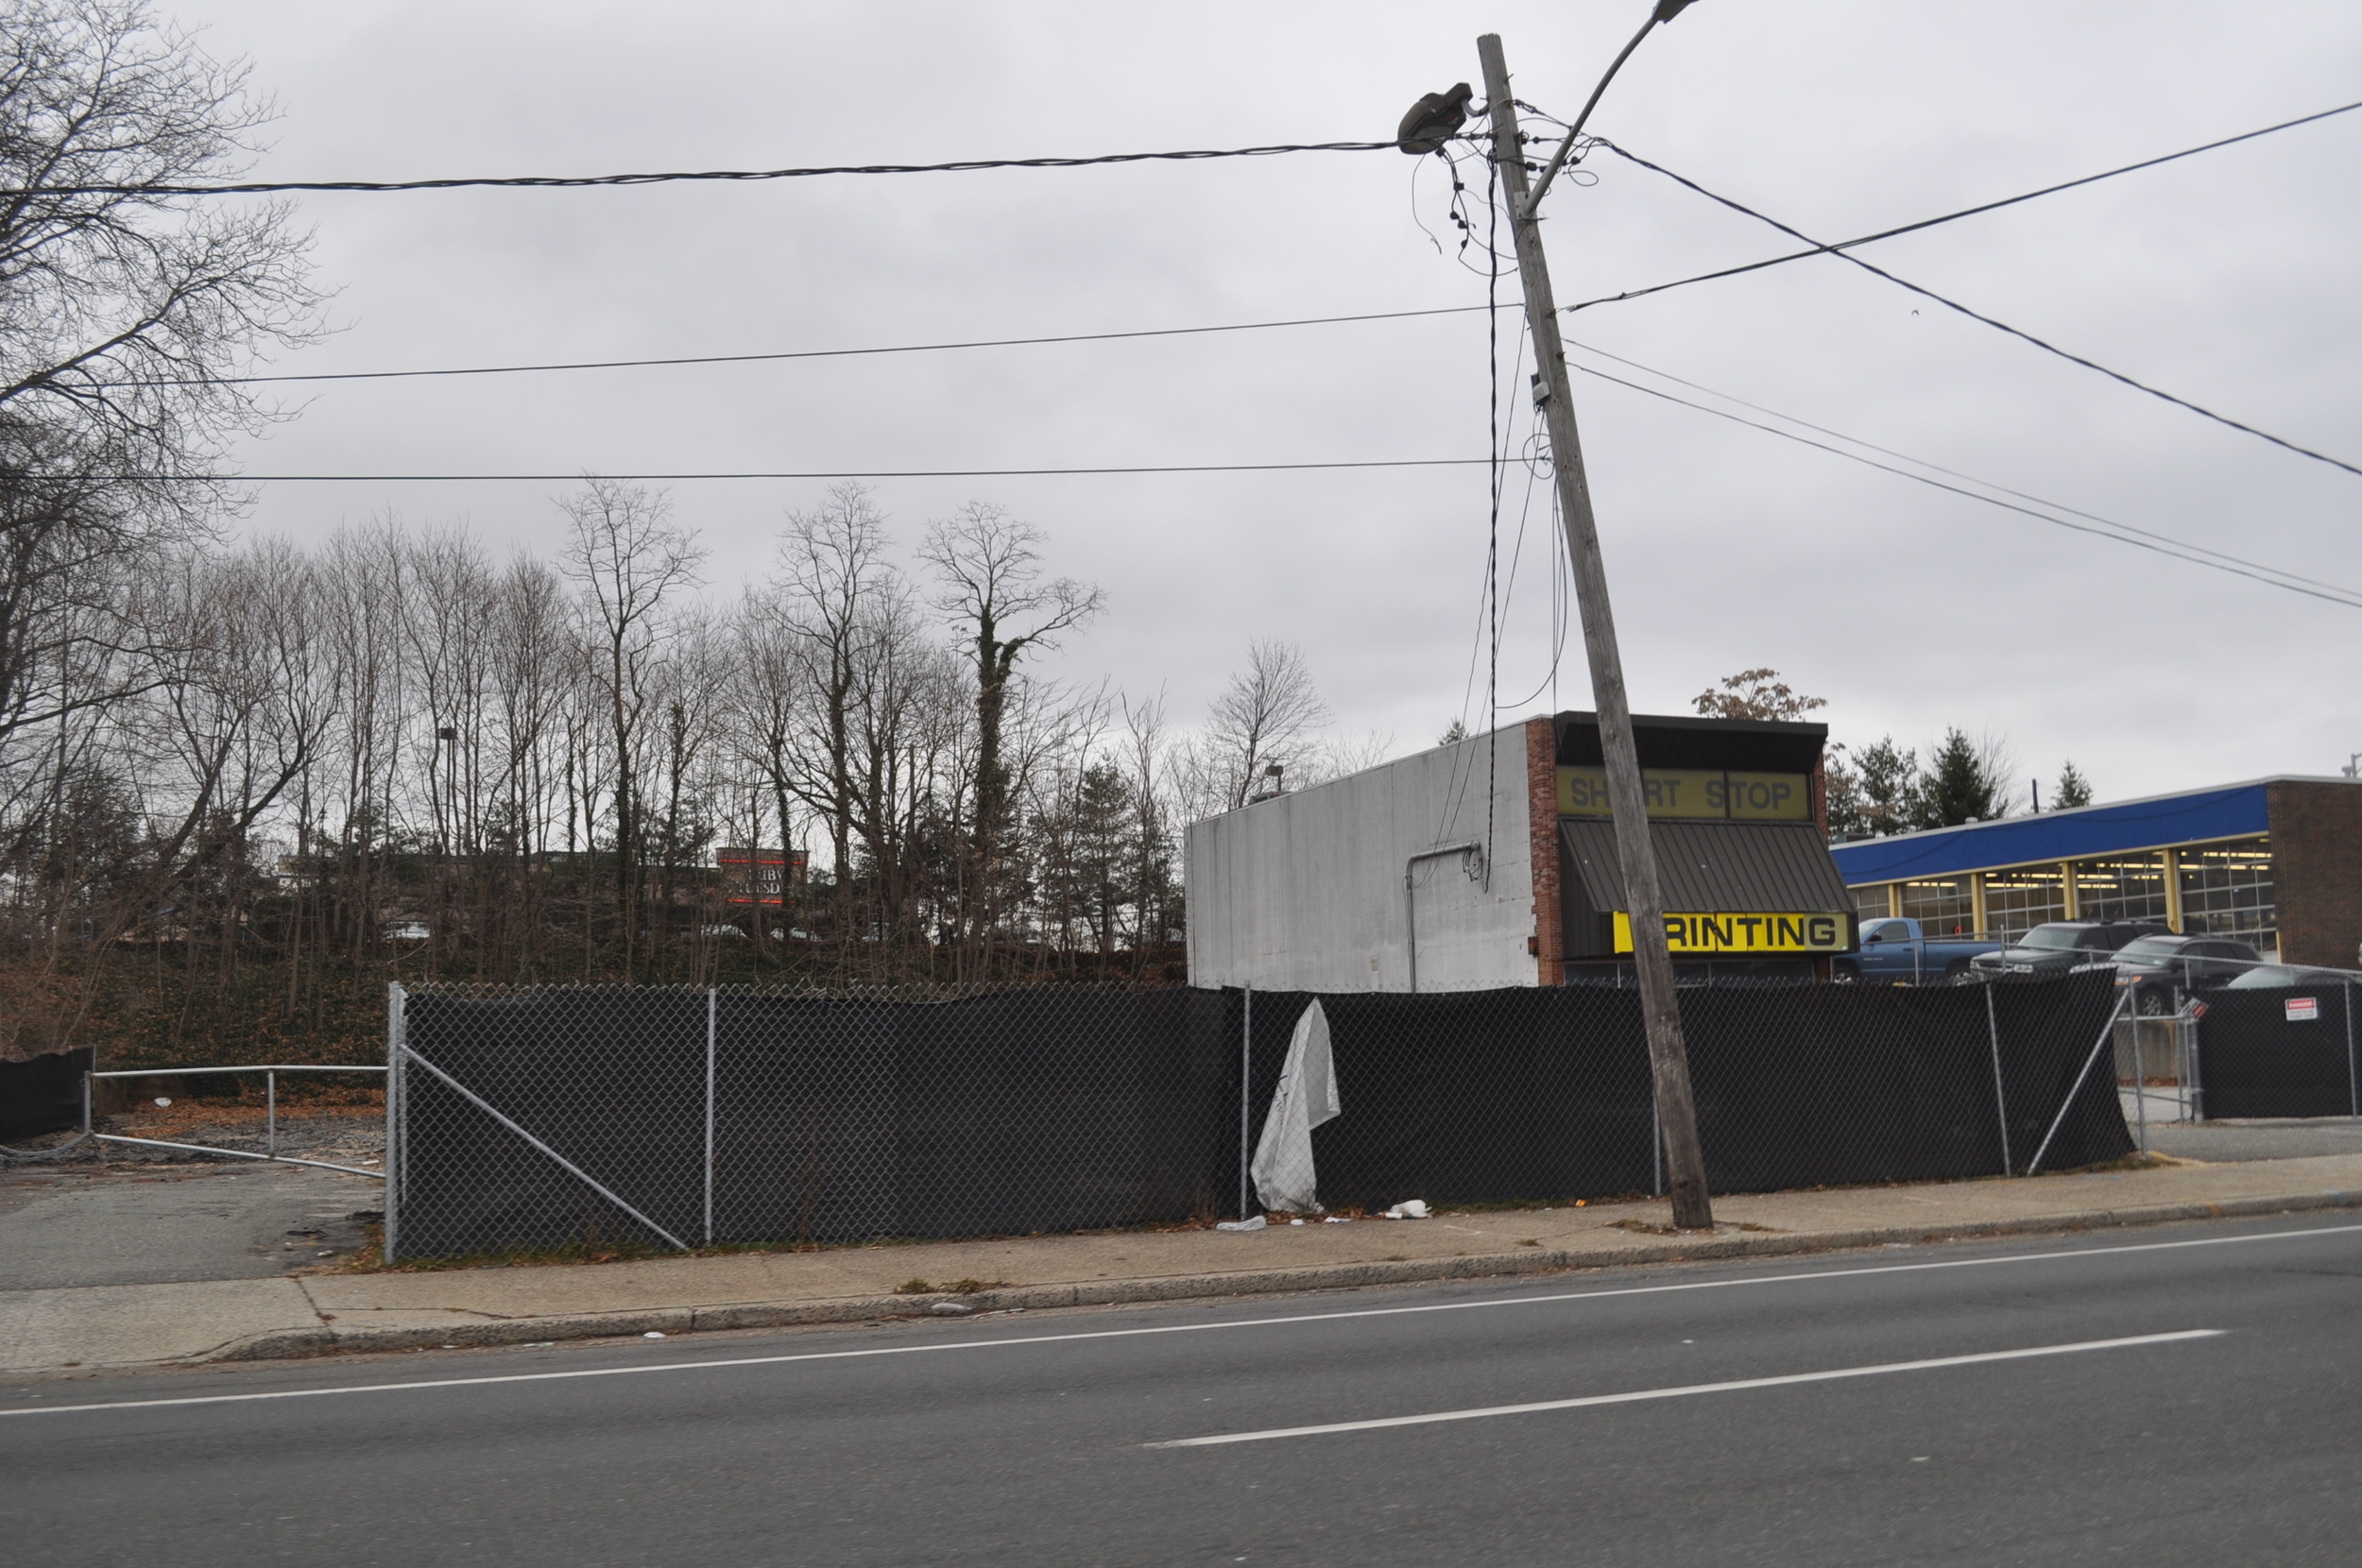 An expanded retail storefront is being considered for 49 Commack Road, which was formerly a Dairy Barn. (Long Islander News photo/Danny Schrafel)